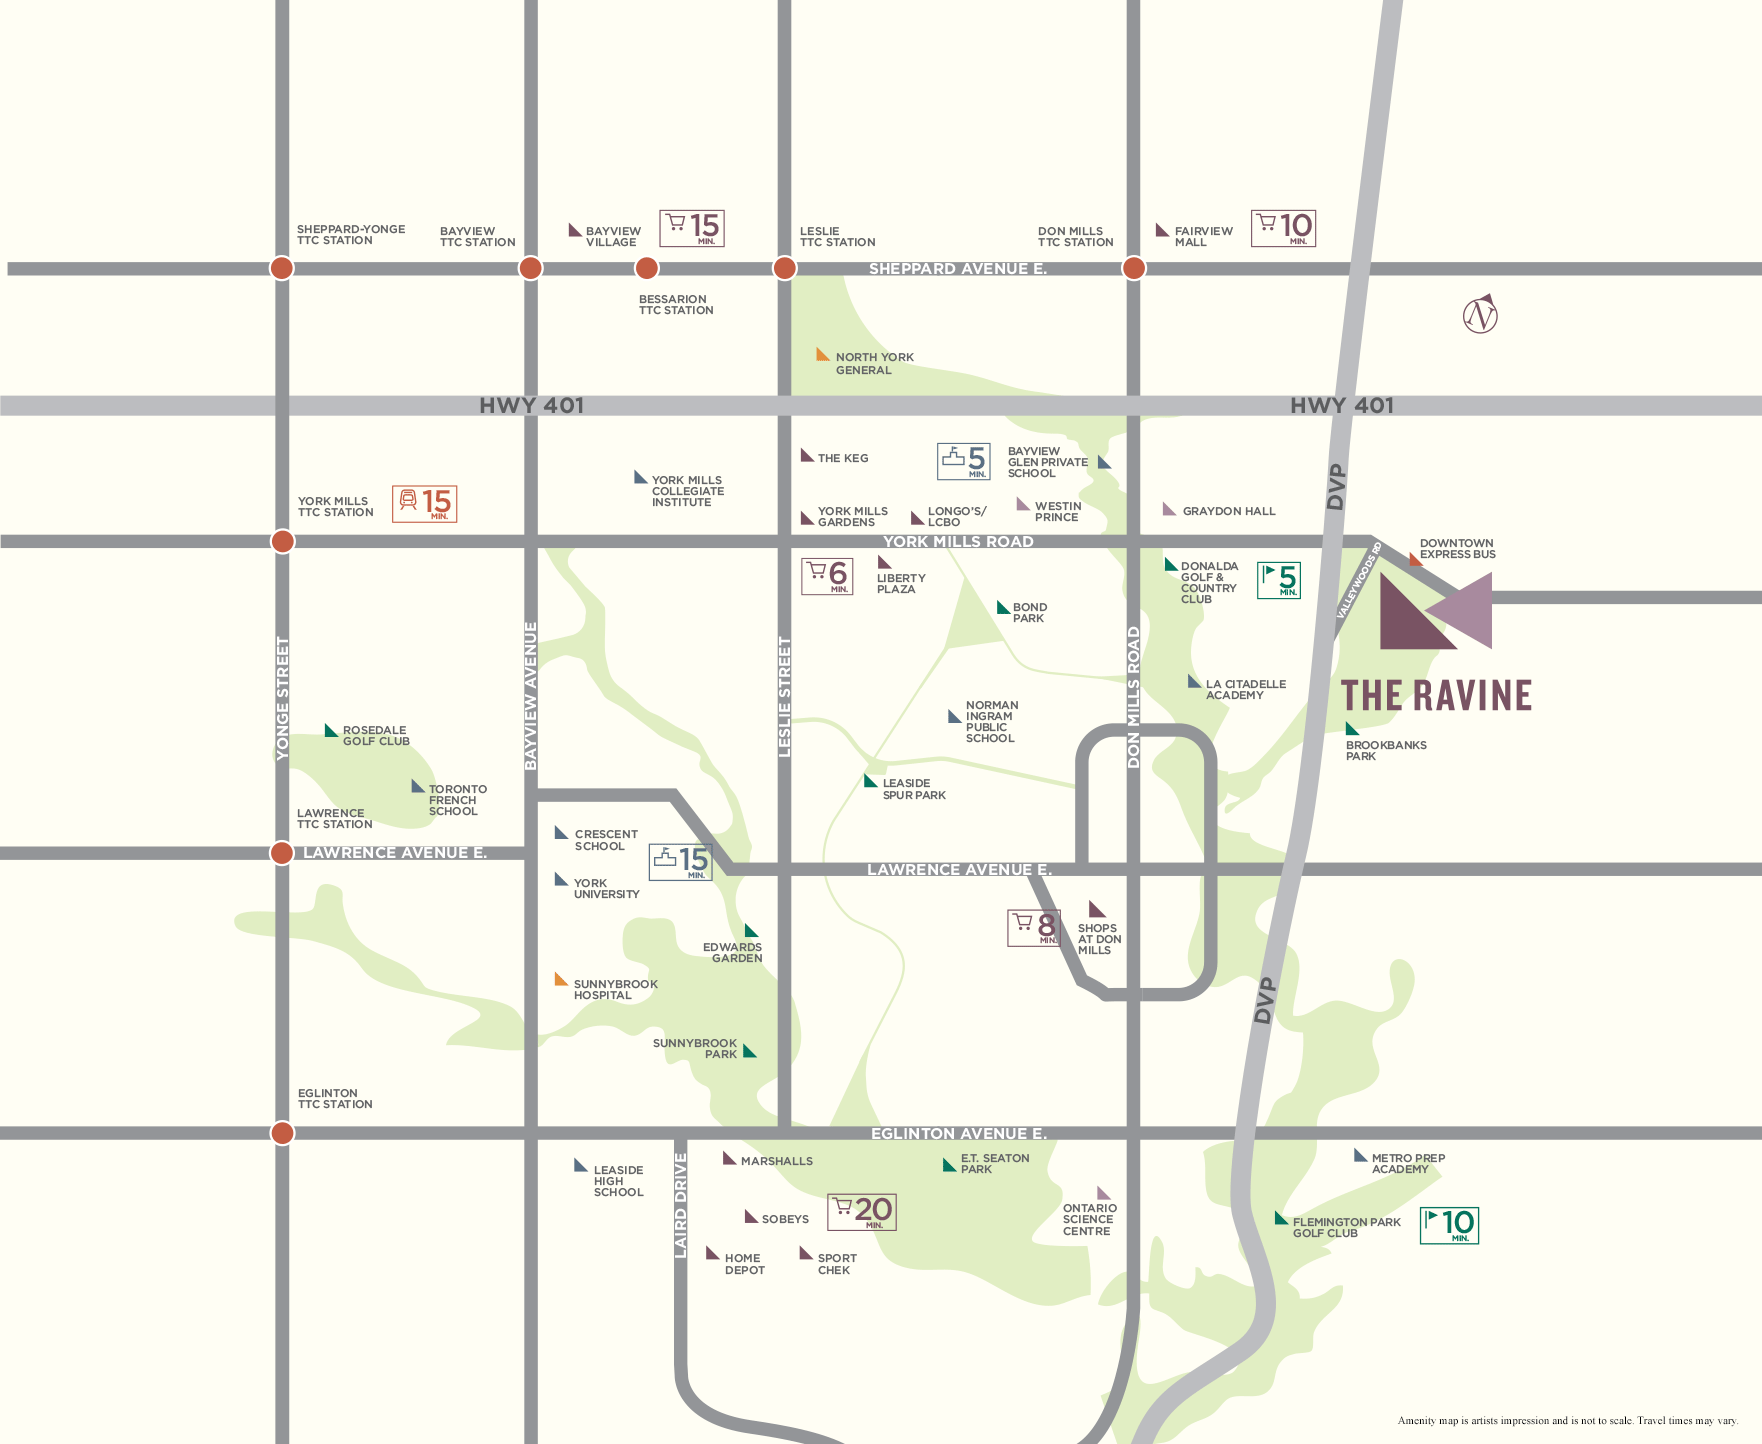 The Ravine Location Map